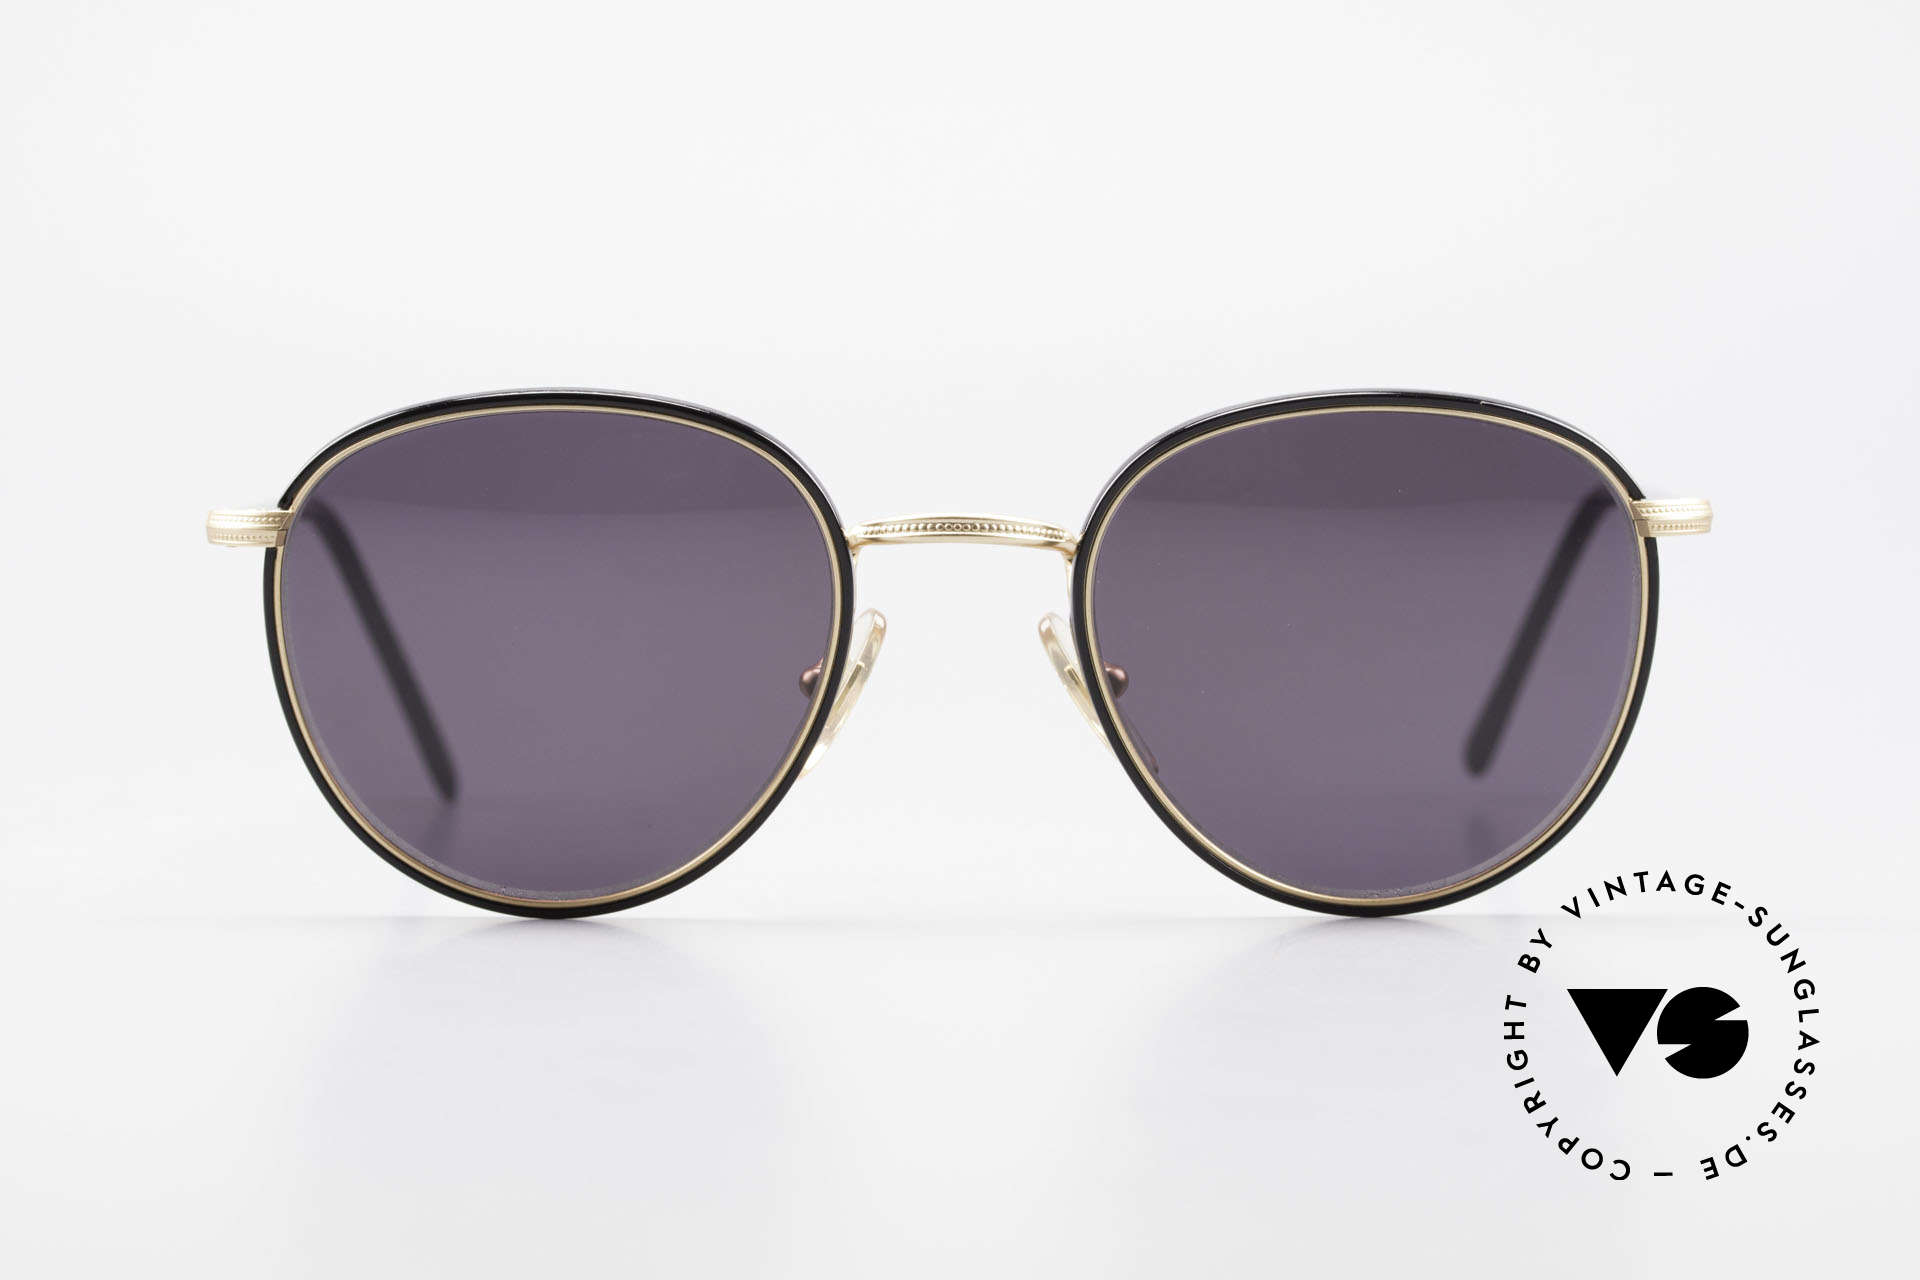 Cutler And Gross 0352 Vintage Panto Sunglasses 90s, classic, timeless UNDERSTATEMENT luxury sunglasses, Made for Men and Women